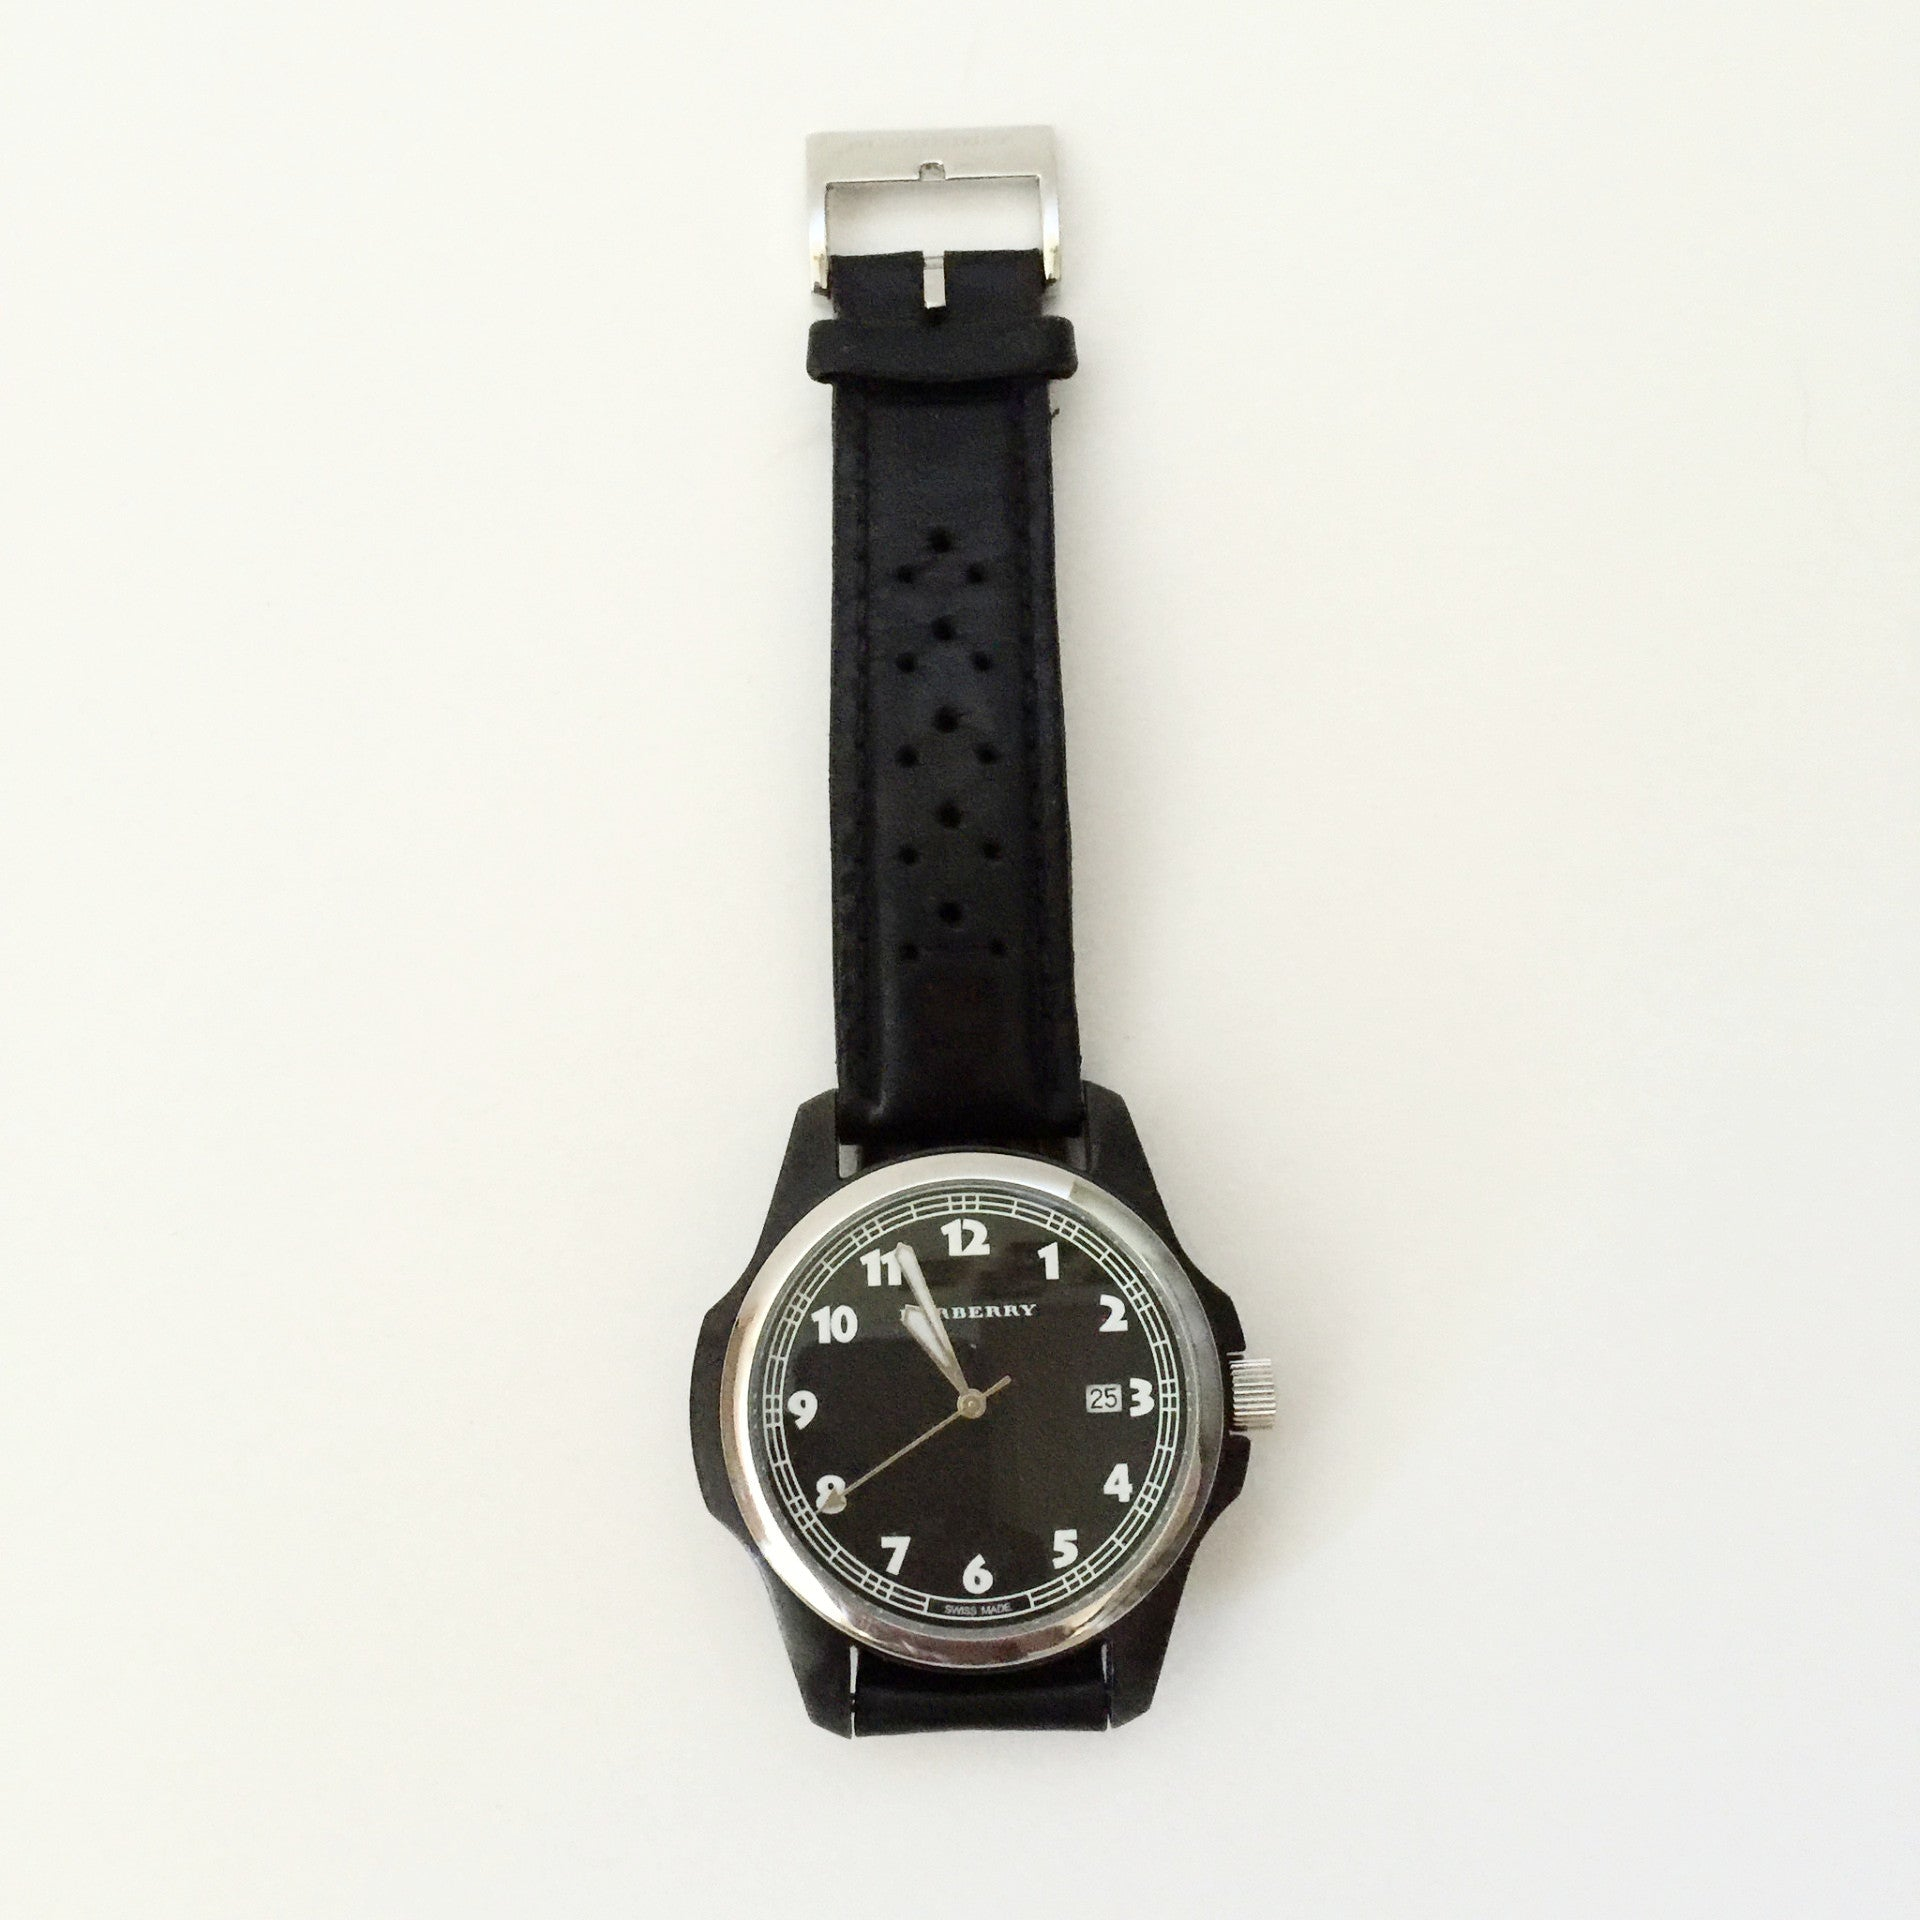 Authentic BURBERRY Mens Watch